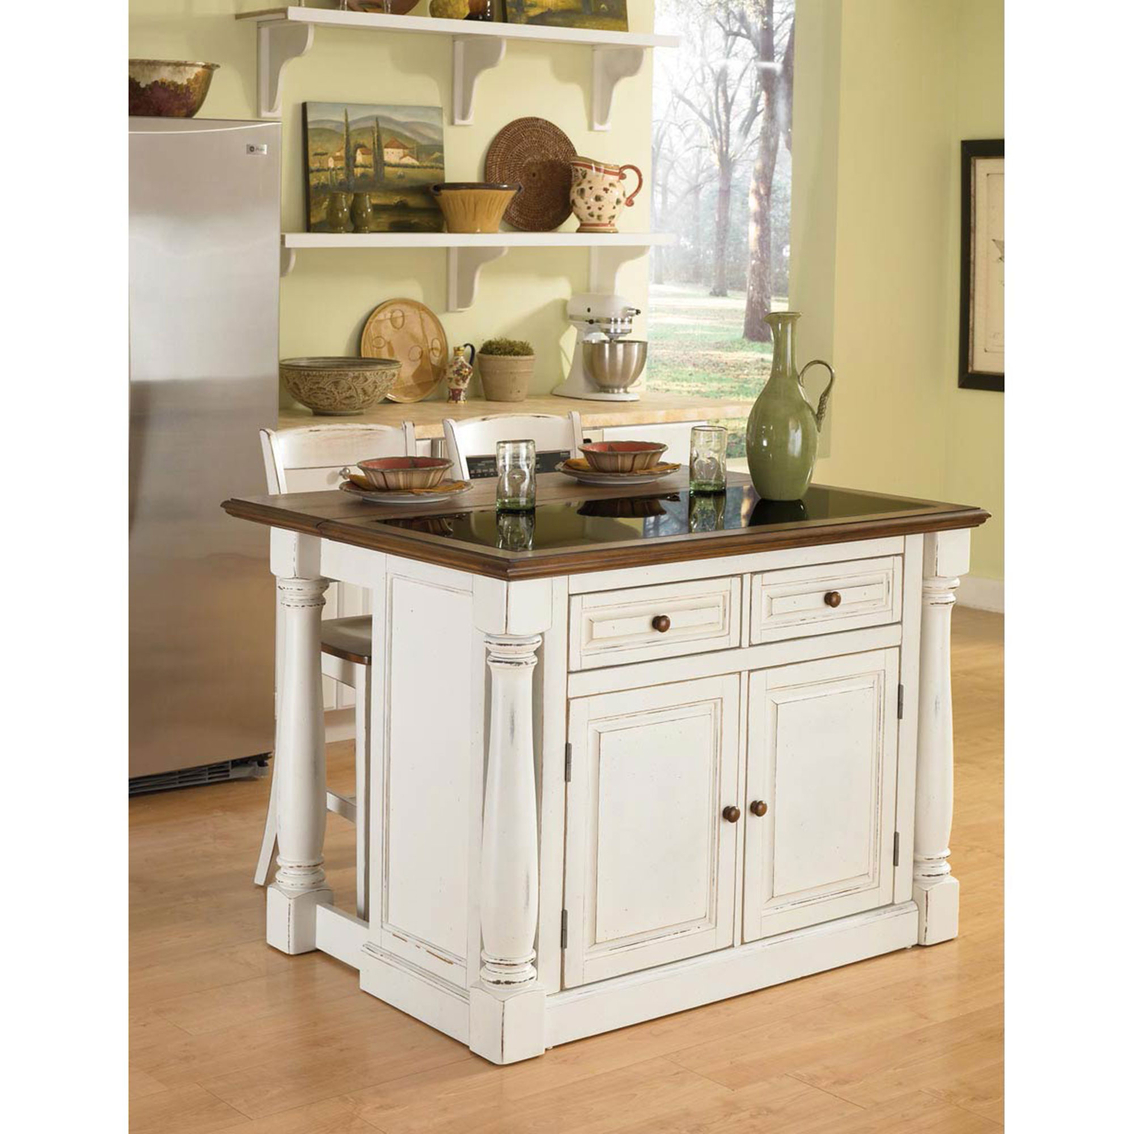 monarch kitchen island elkay faucets home styles and two stools with